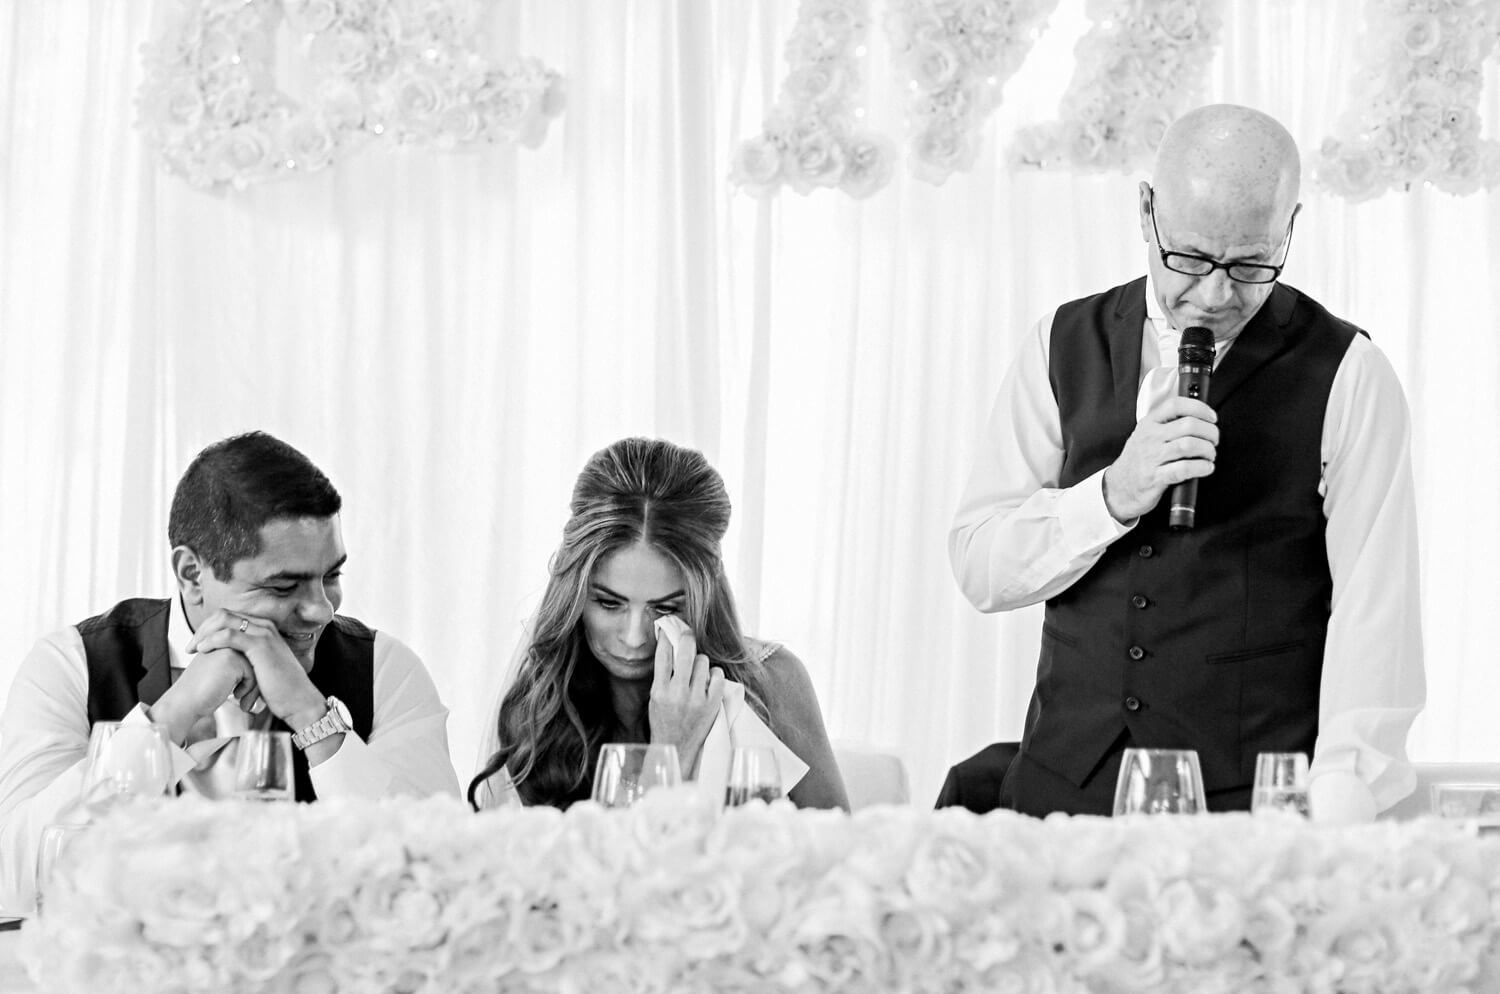 Dad making wedding speech, emotional bride whipping tears